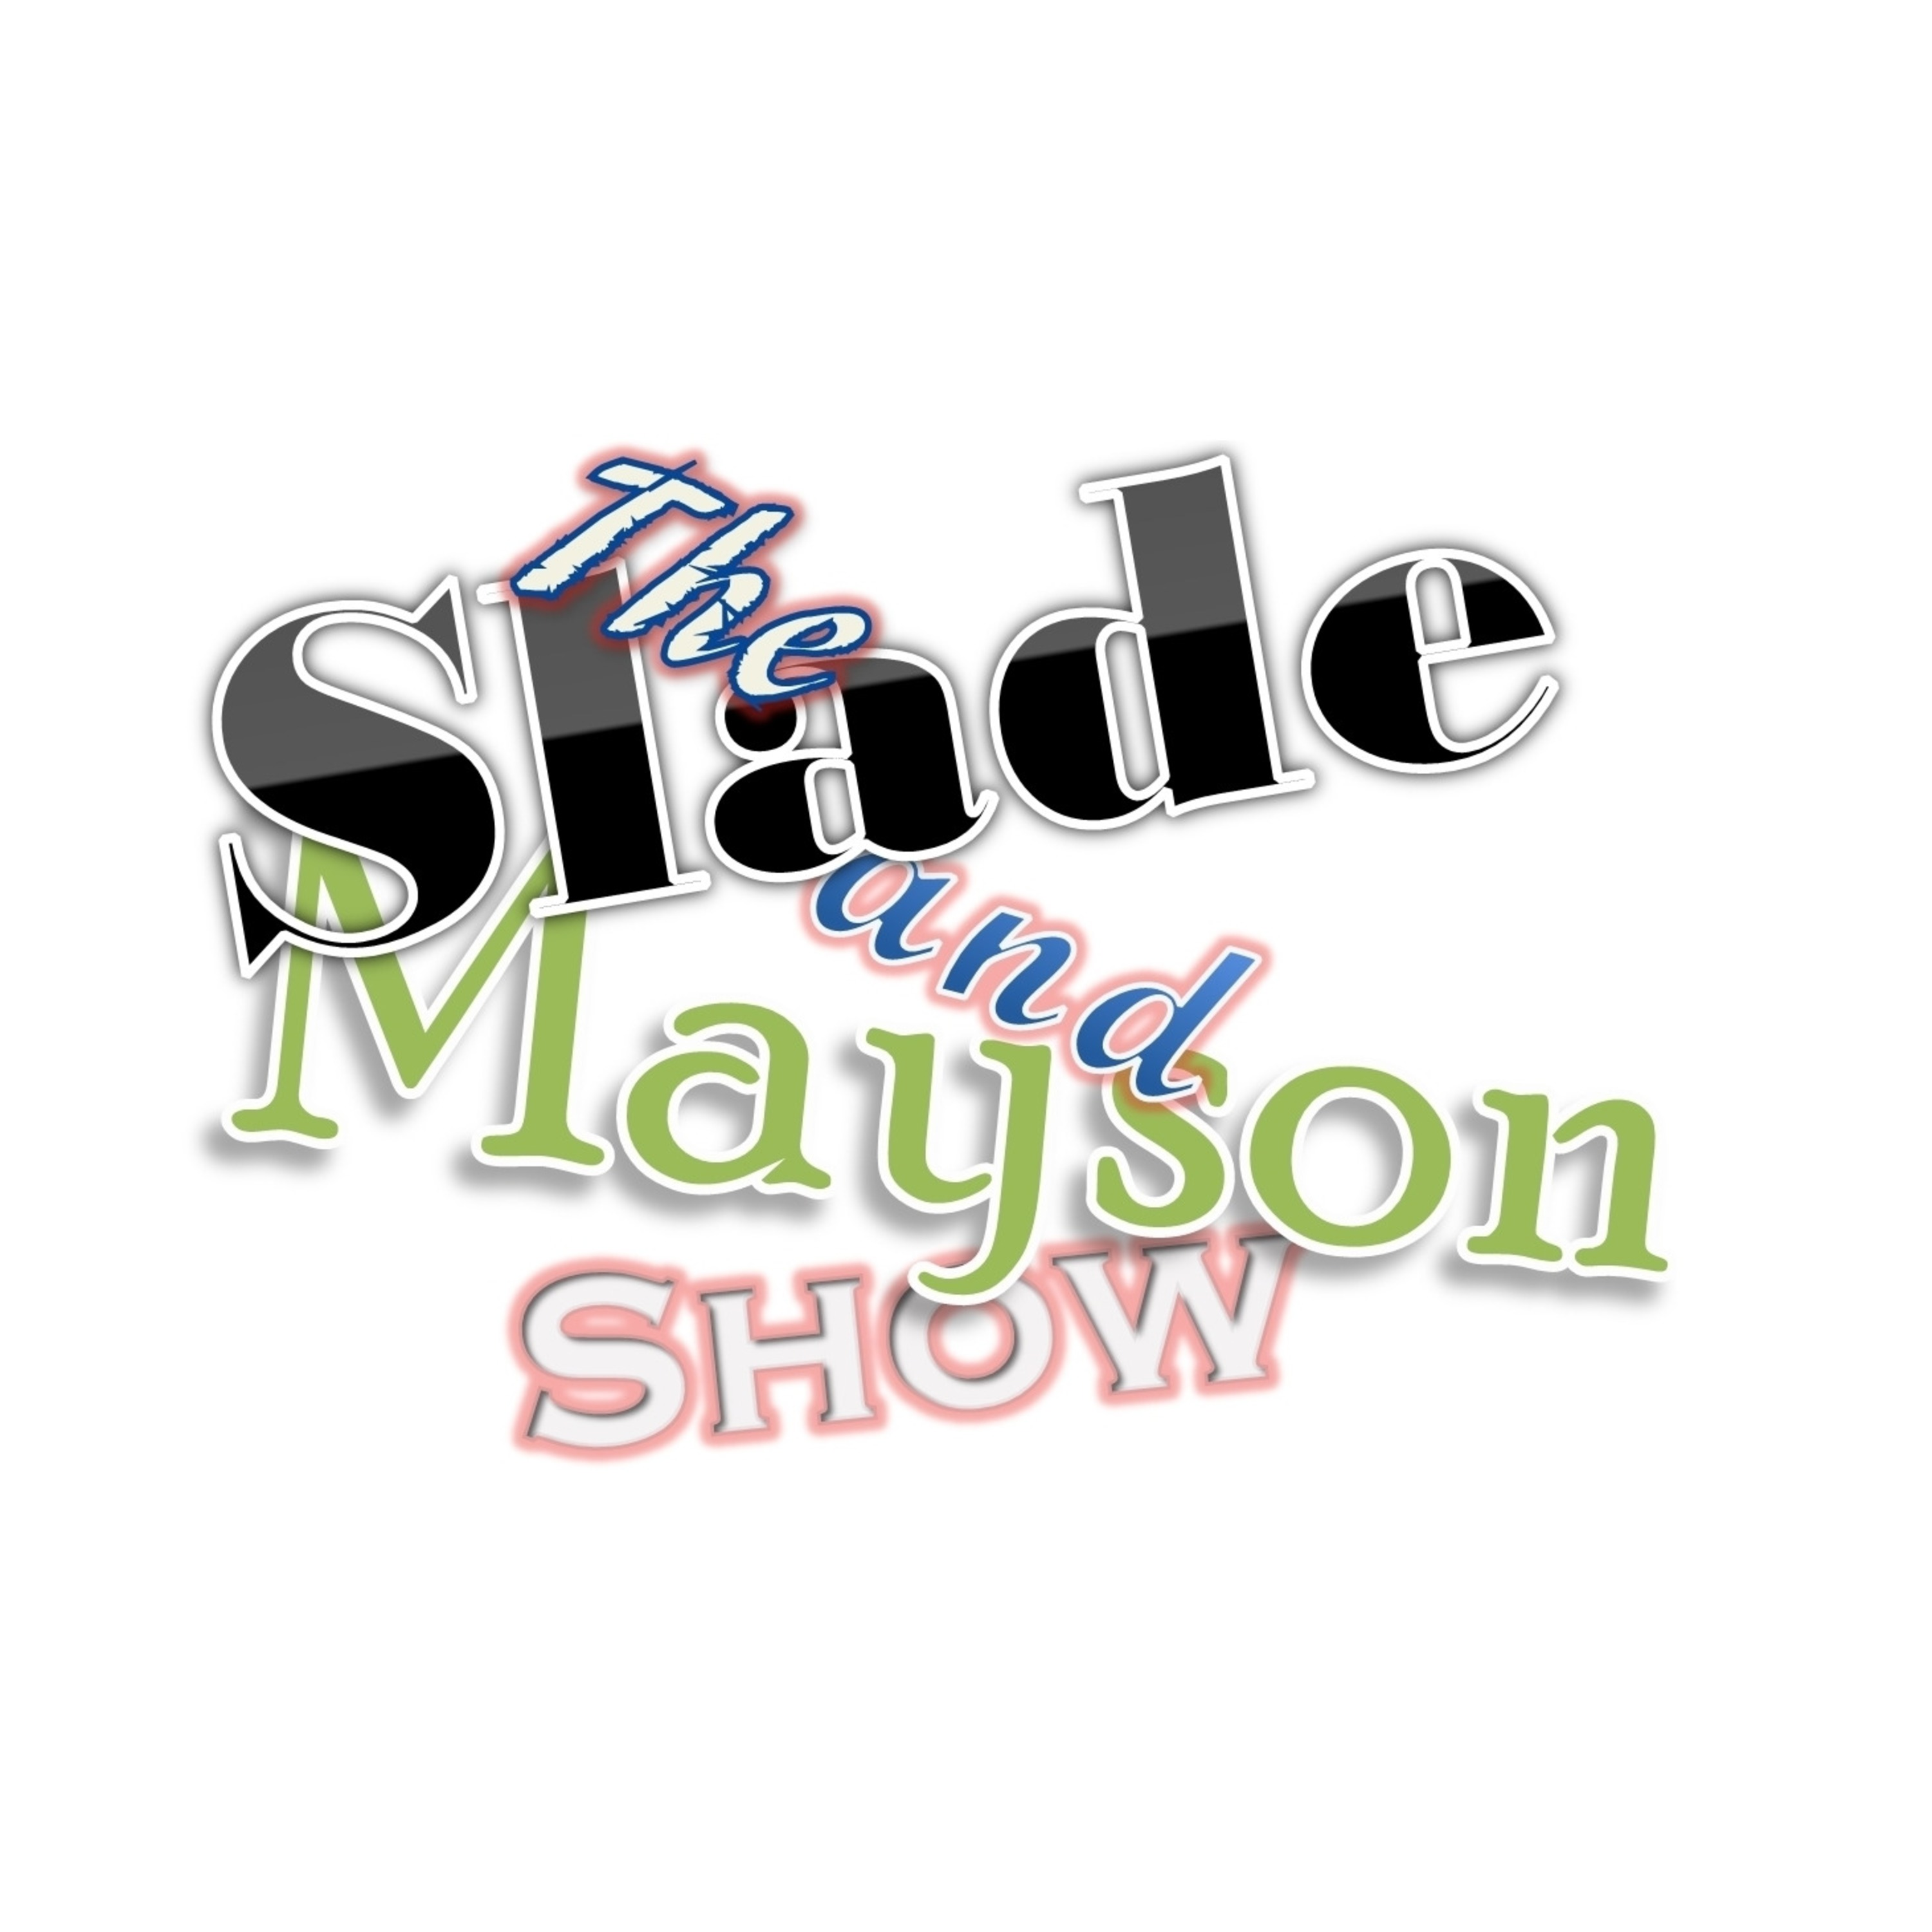 The Slade and Mayson Show